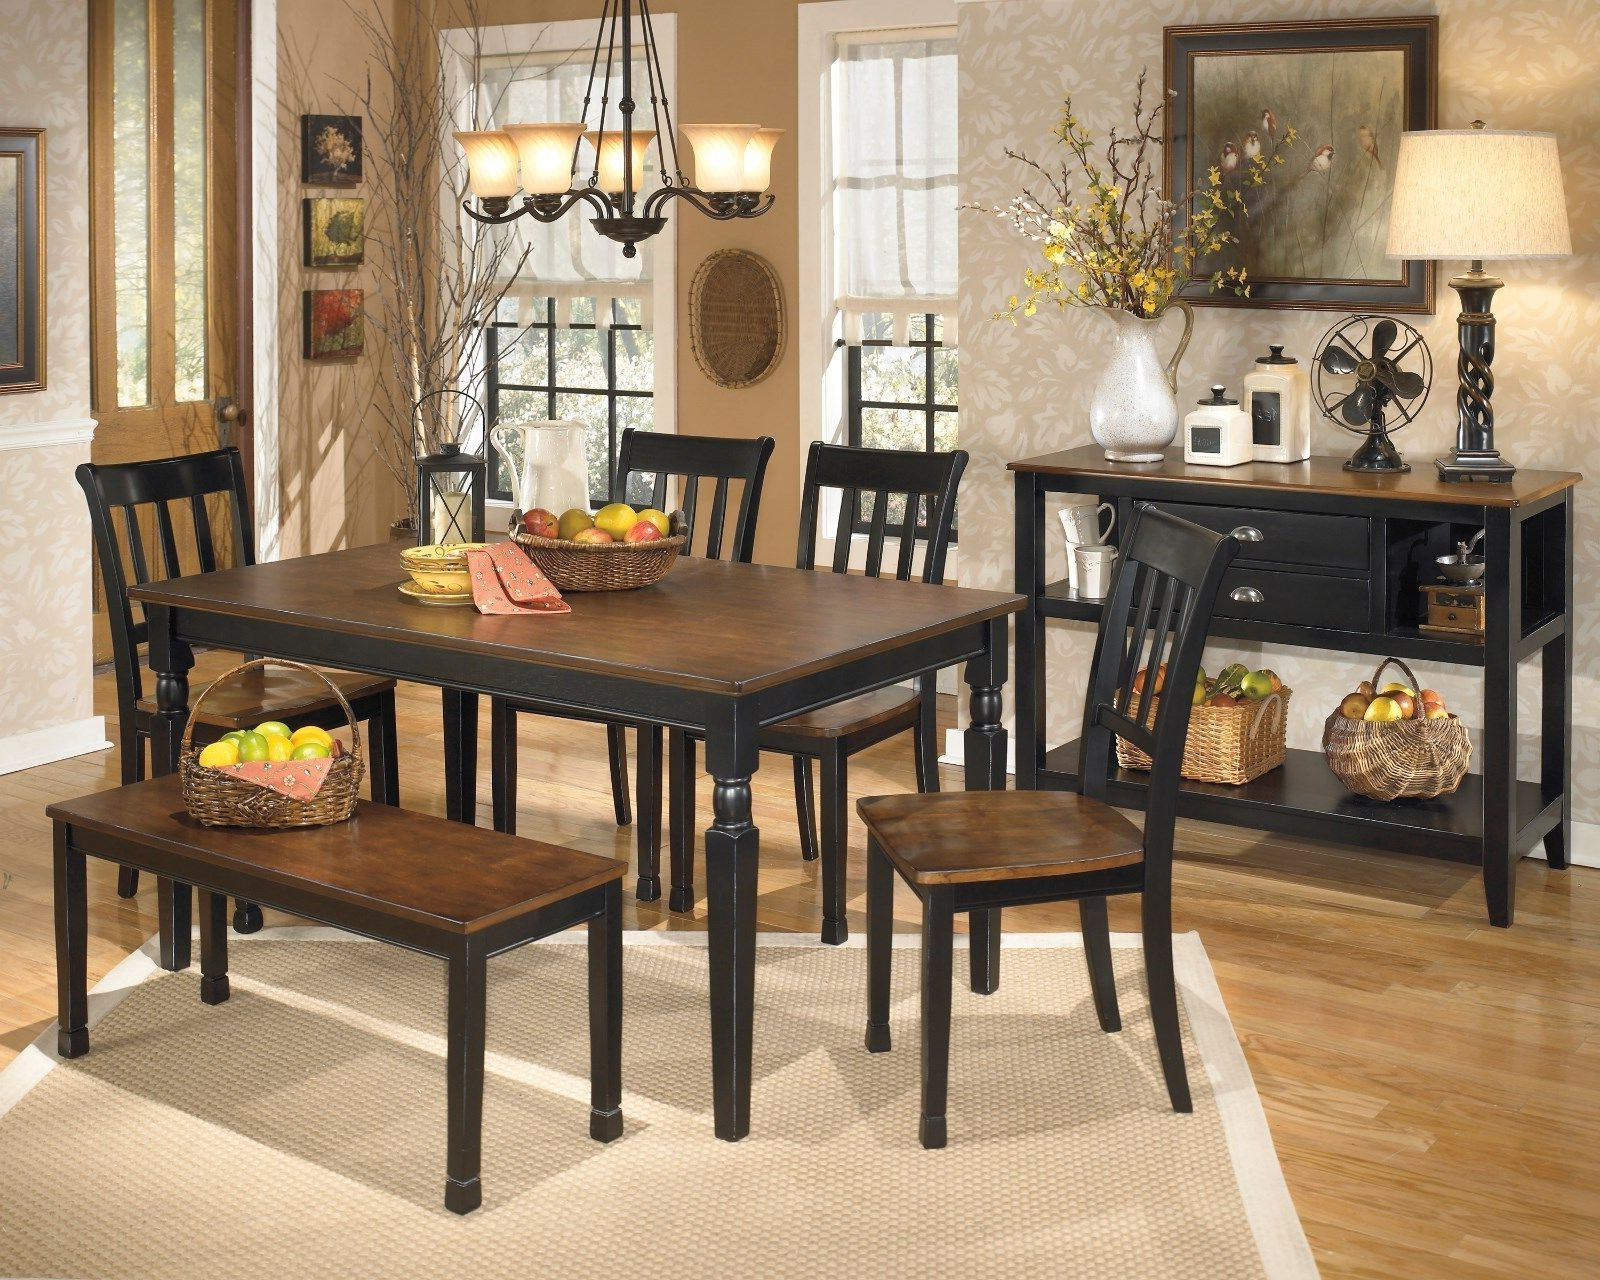 Ashley Furniture Owingsville 6 Piece Dining Table Set D580 Throughout Popular Transitional 6 Seating Casual Dining Tables (View 6 of 25)